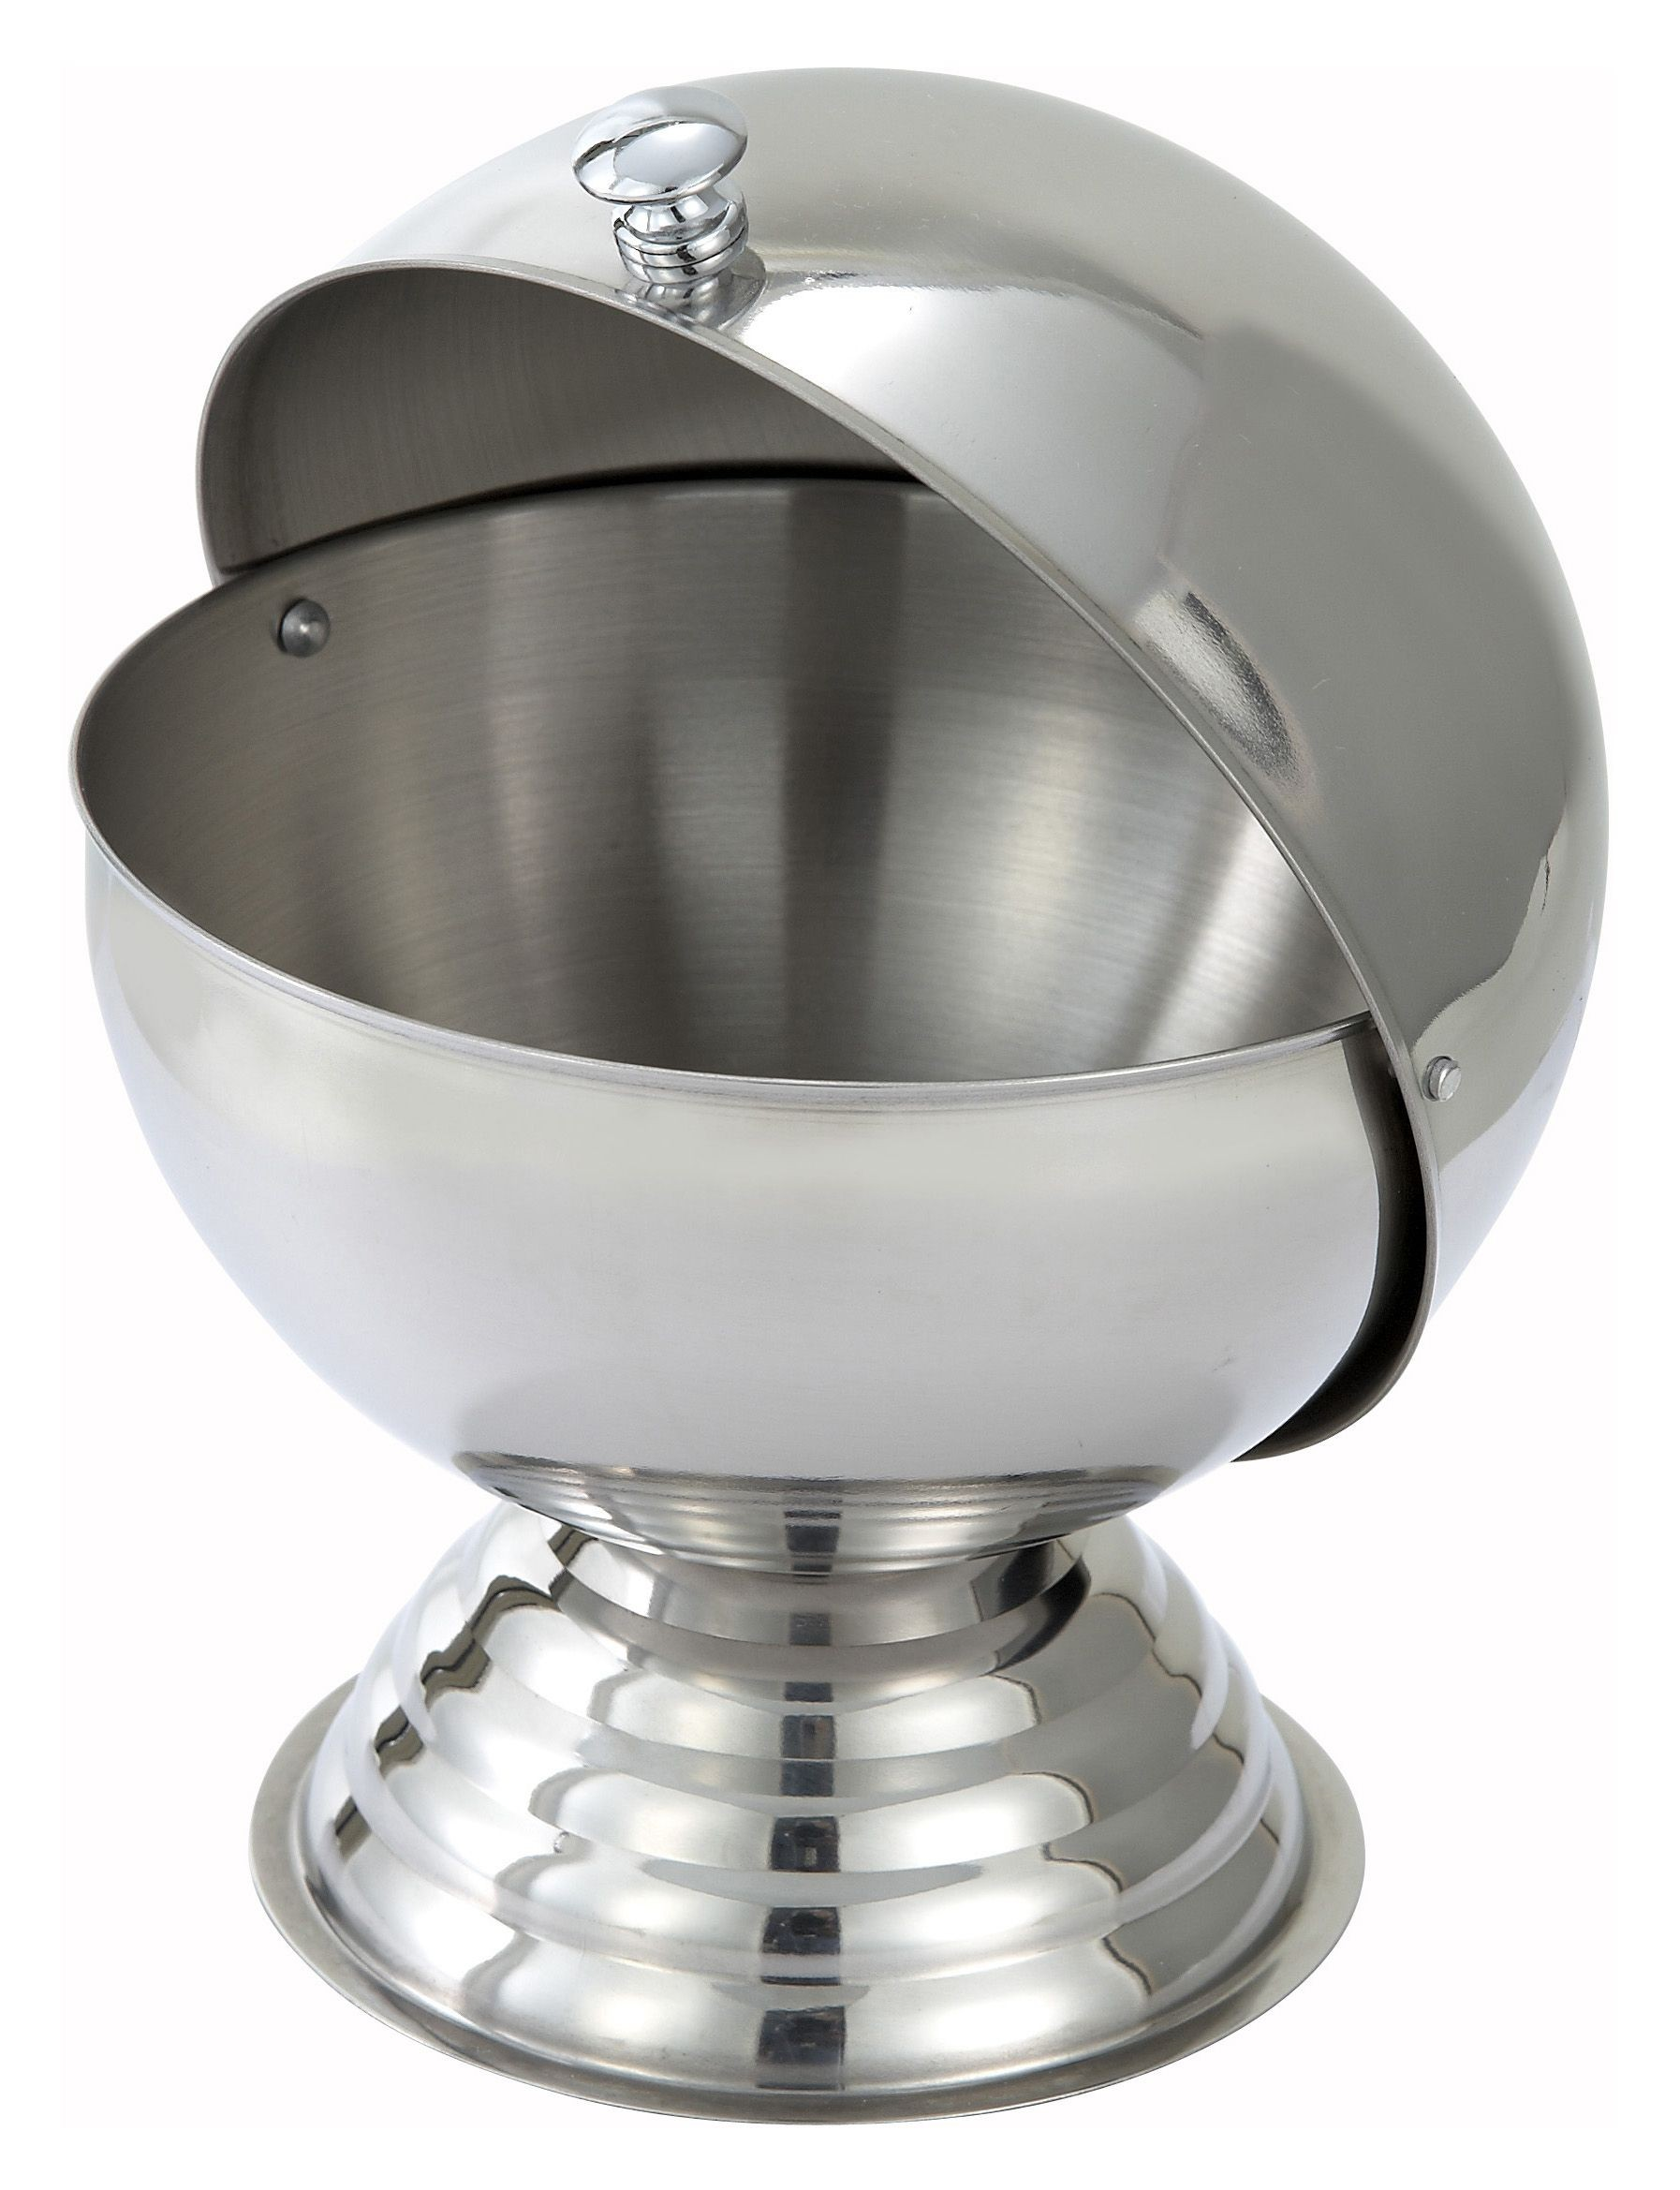 Winco SBR-30 Stainless Steel Sugar Bowl with Roll Top Lid 30 oz.